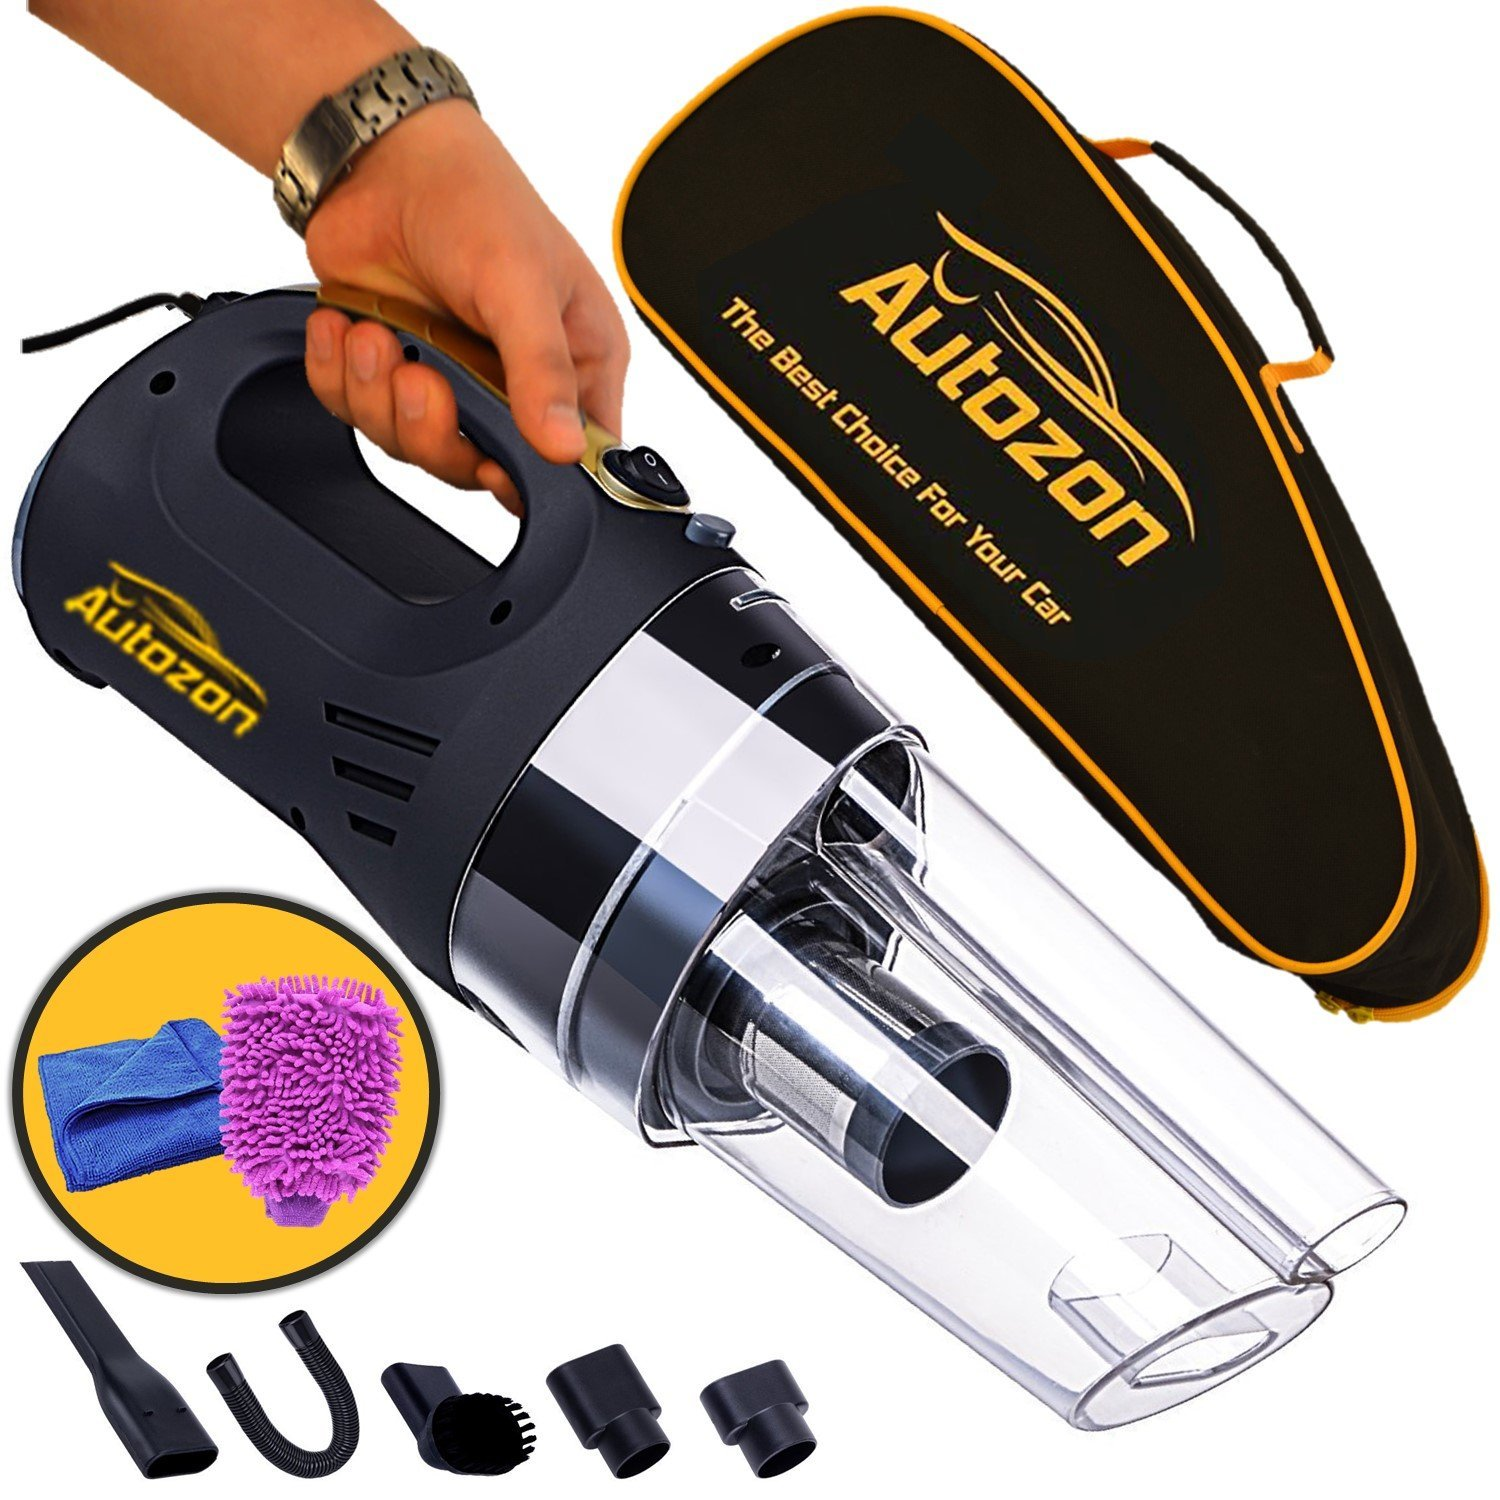 Autozon car cleaner vacuum